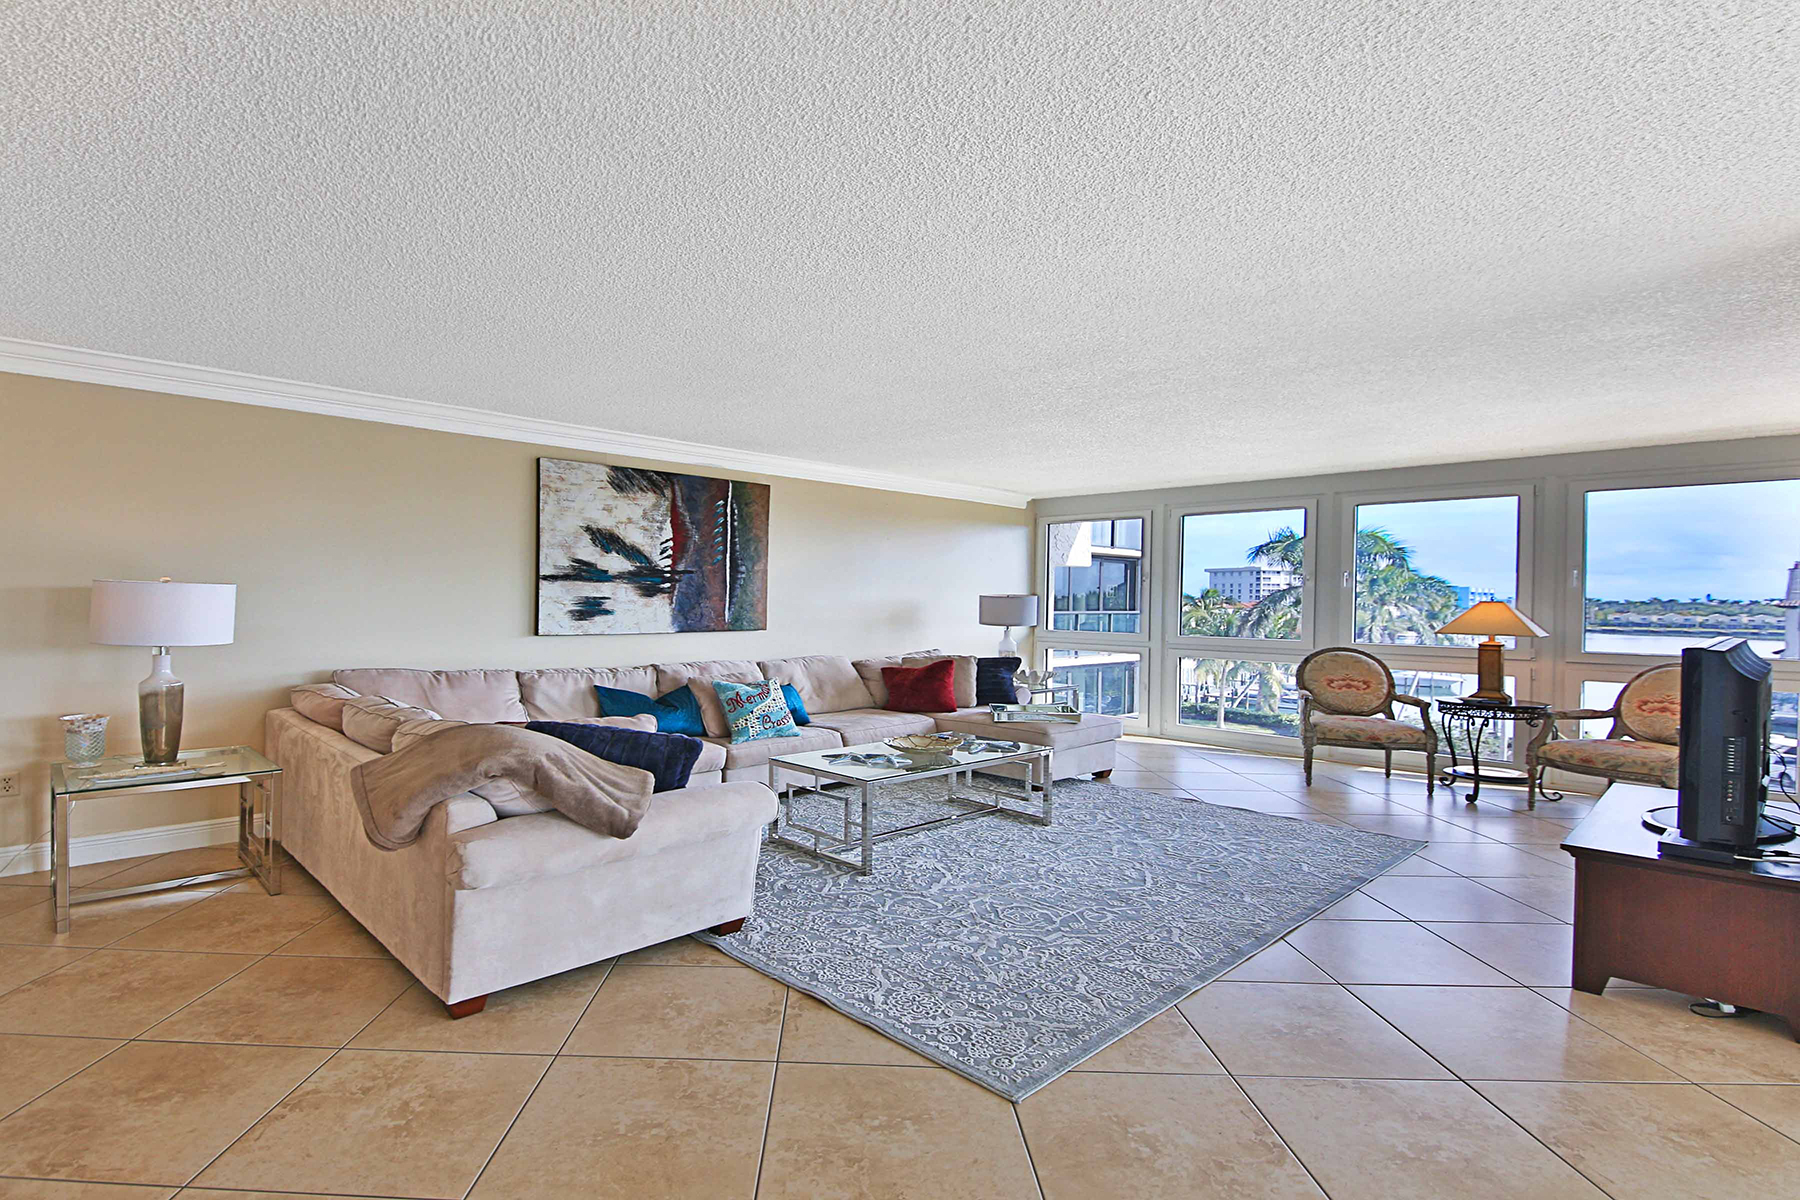 شقة بعمارة للـ Rent في PARK SHORE - ALLEGRO 4031 Gulf Shore Blvd N 45, Naples, Florida, 34103 United States